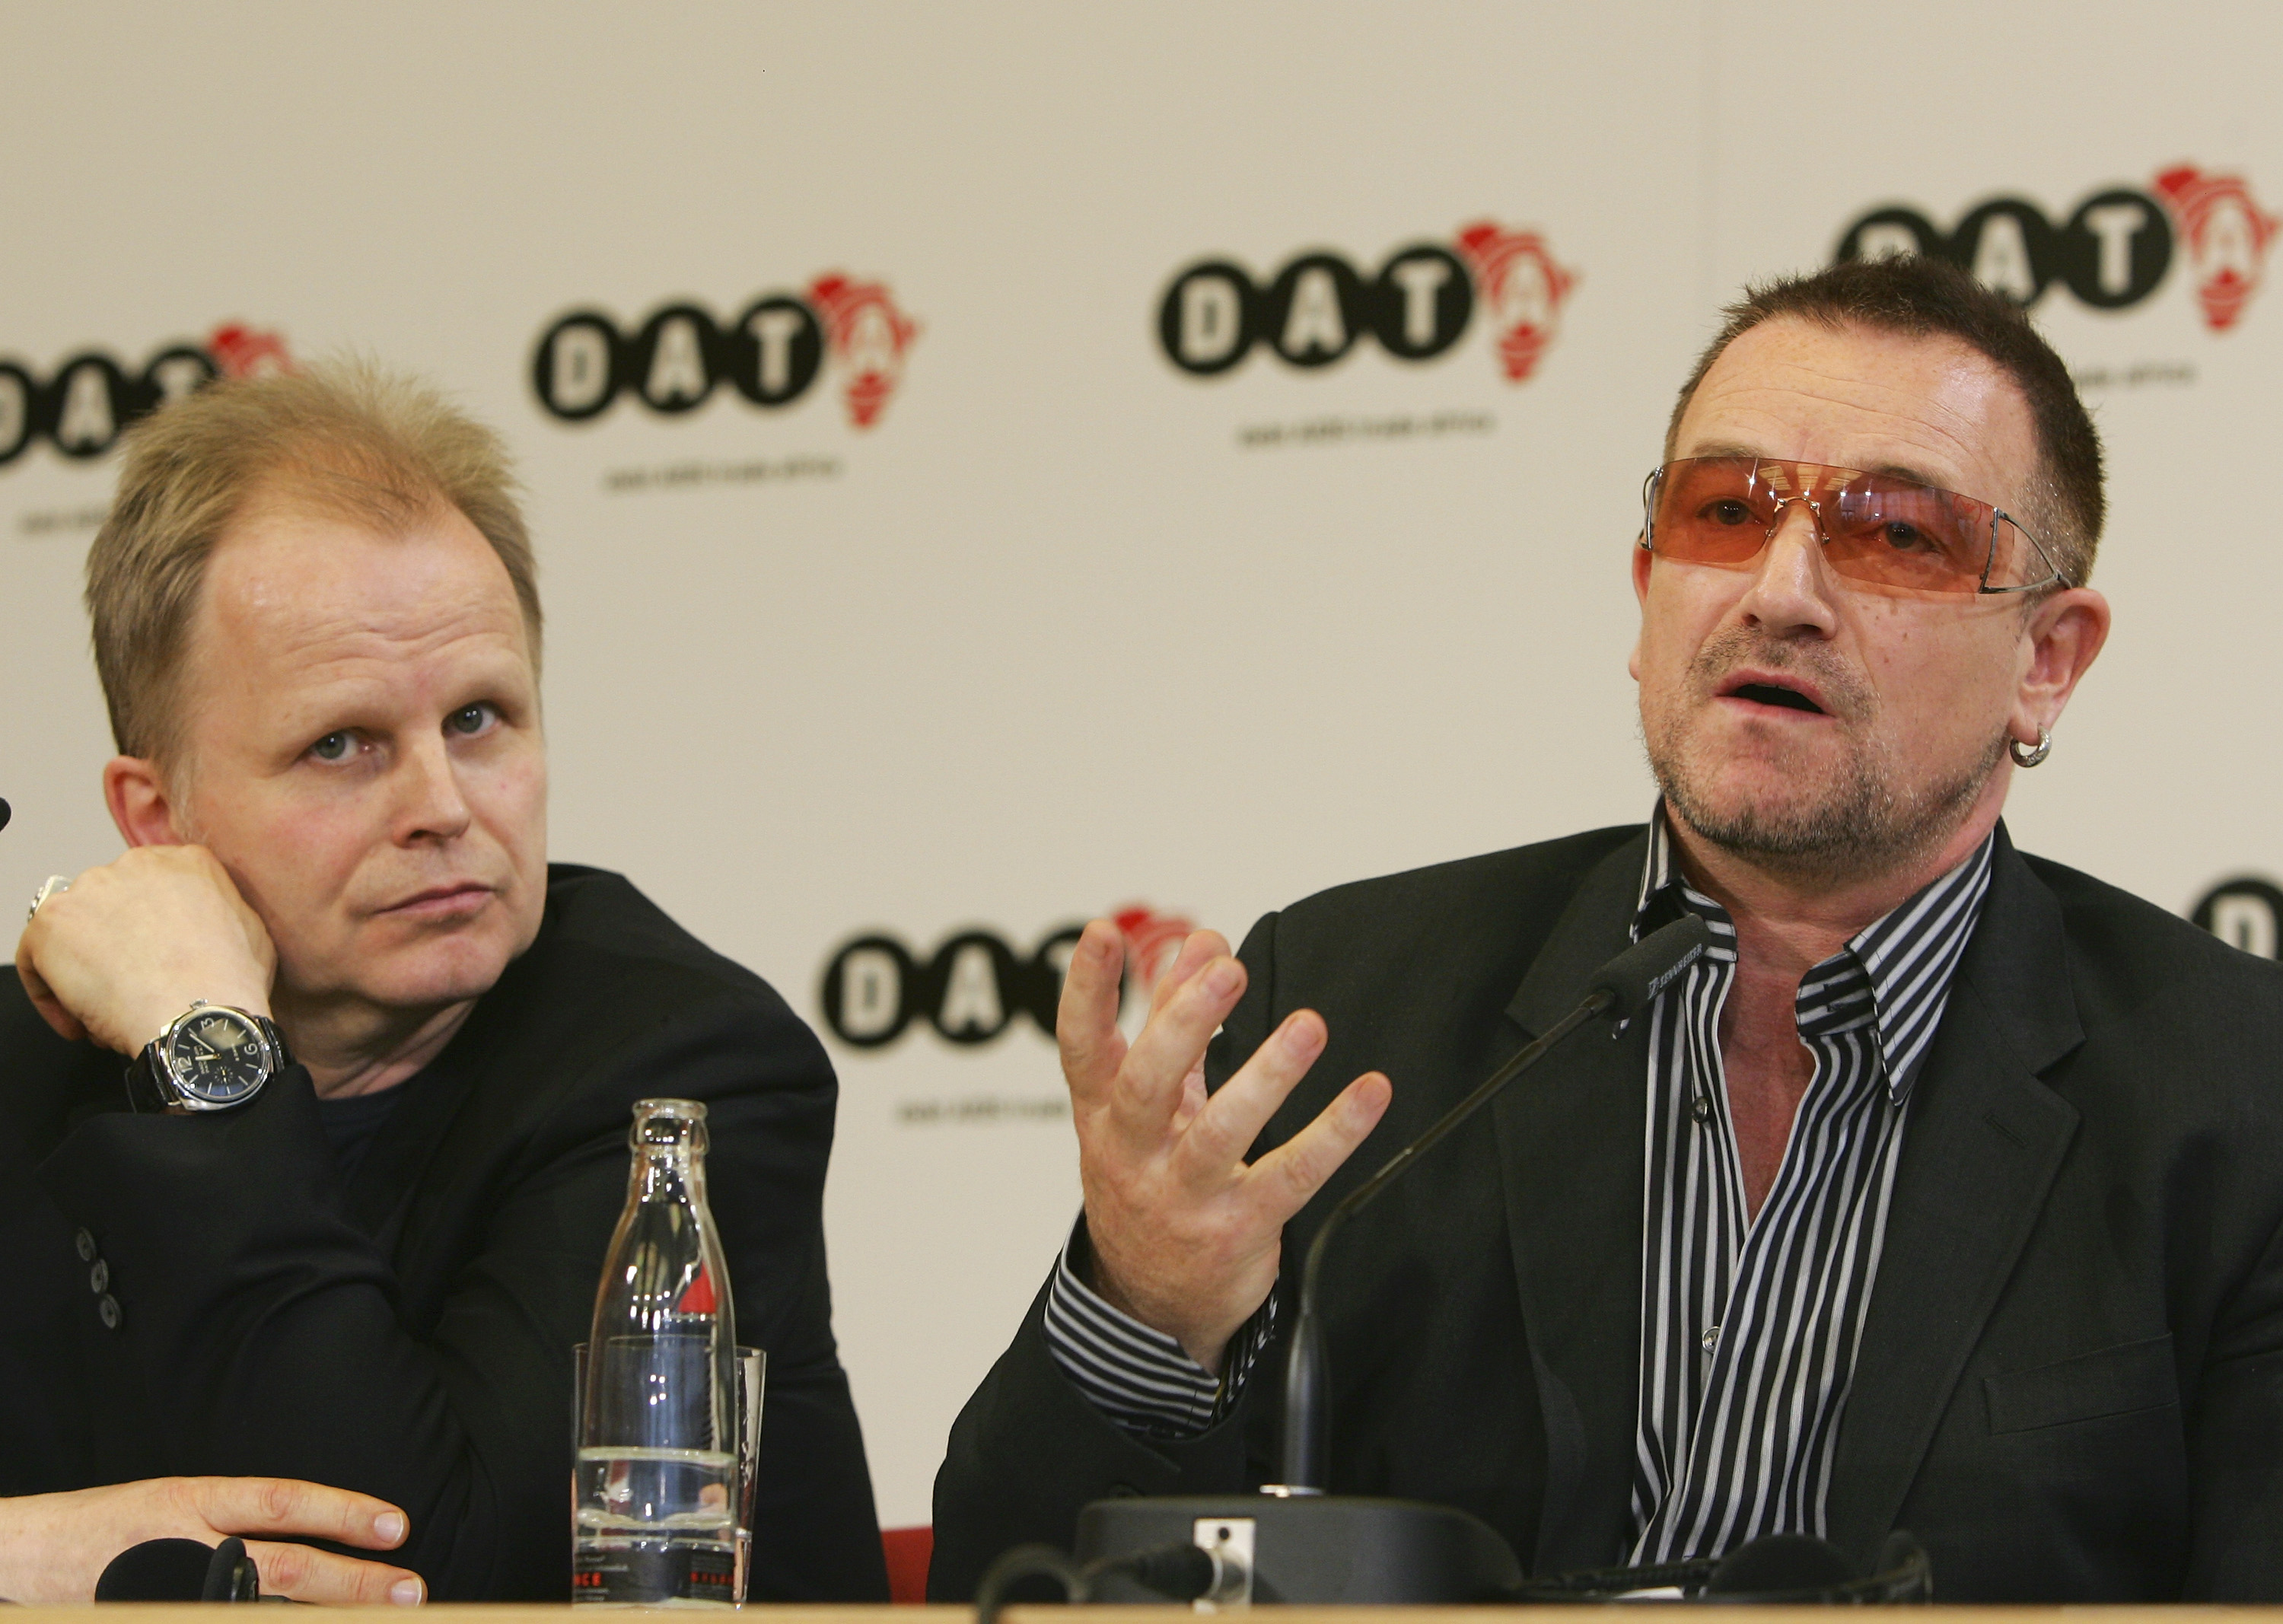 BERLIN - MAY 15:  Musicians Bono (R) and Herbert Groenemeyer speak during a news conference after the presentation of DATA (D